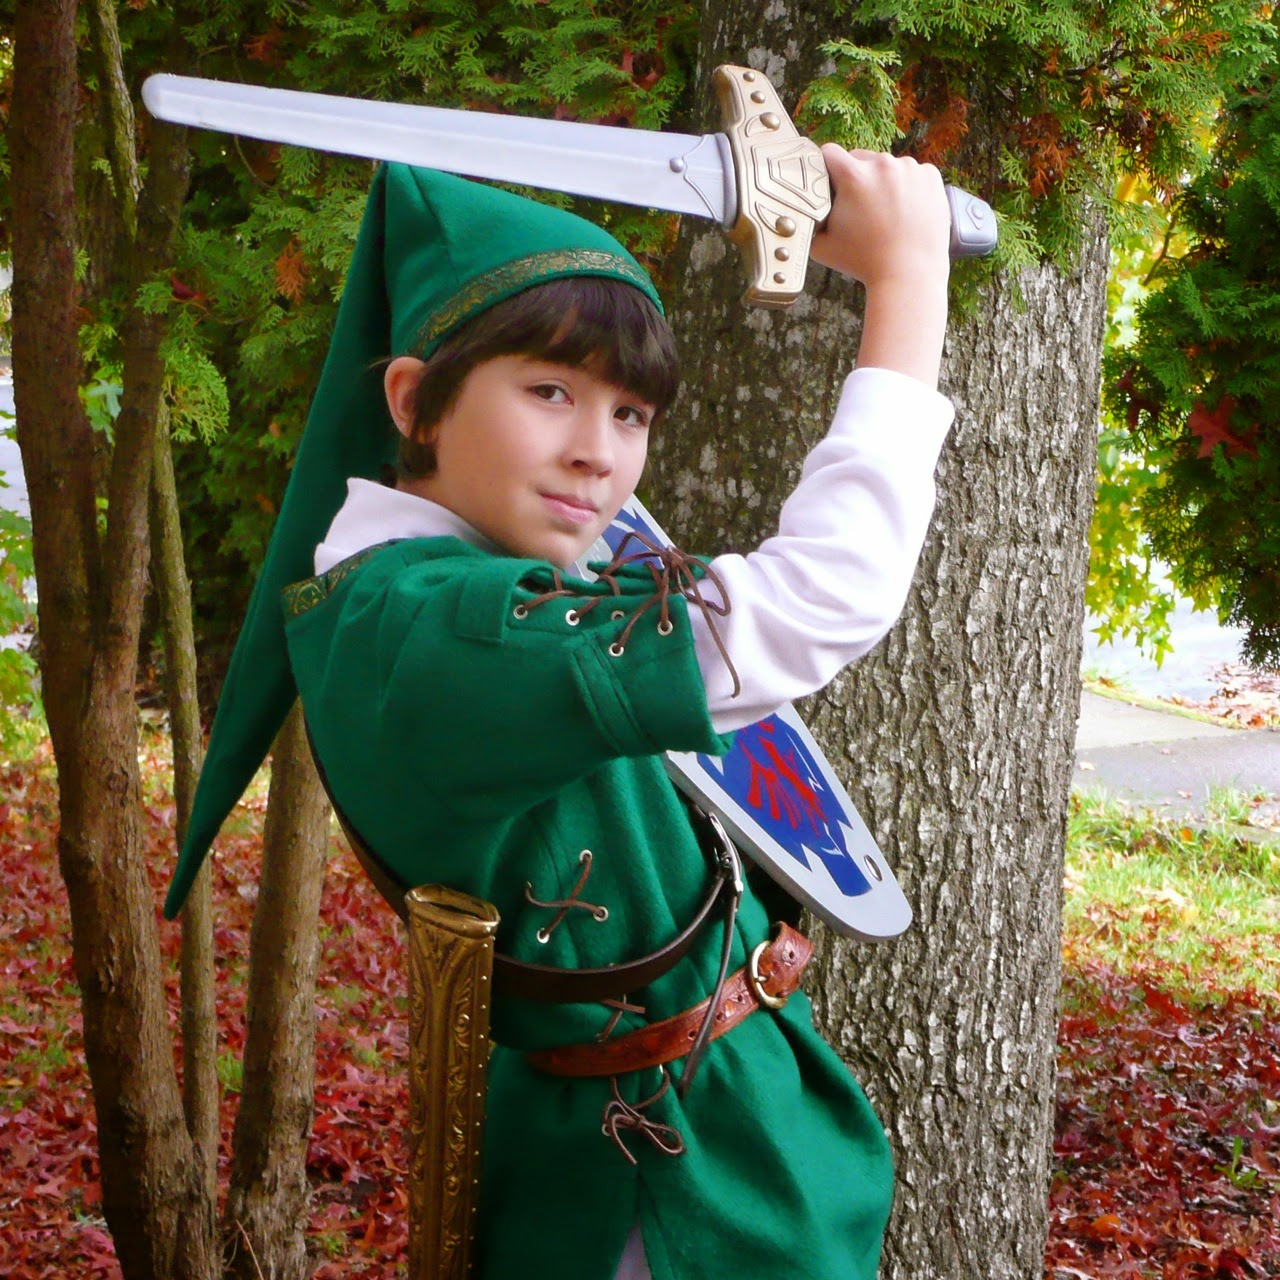 Zelda, costume, boy, kid, fun, sword, shield, Nintendo, video game, cosplay